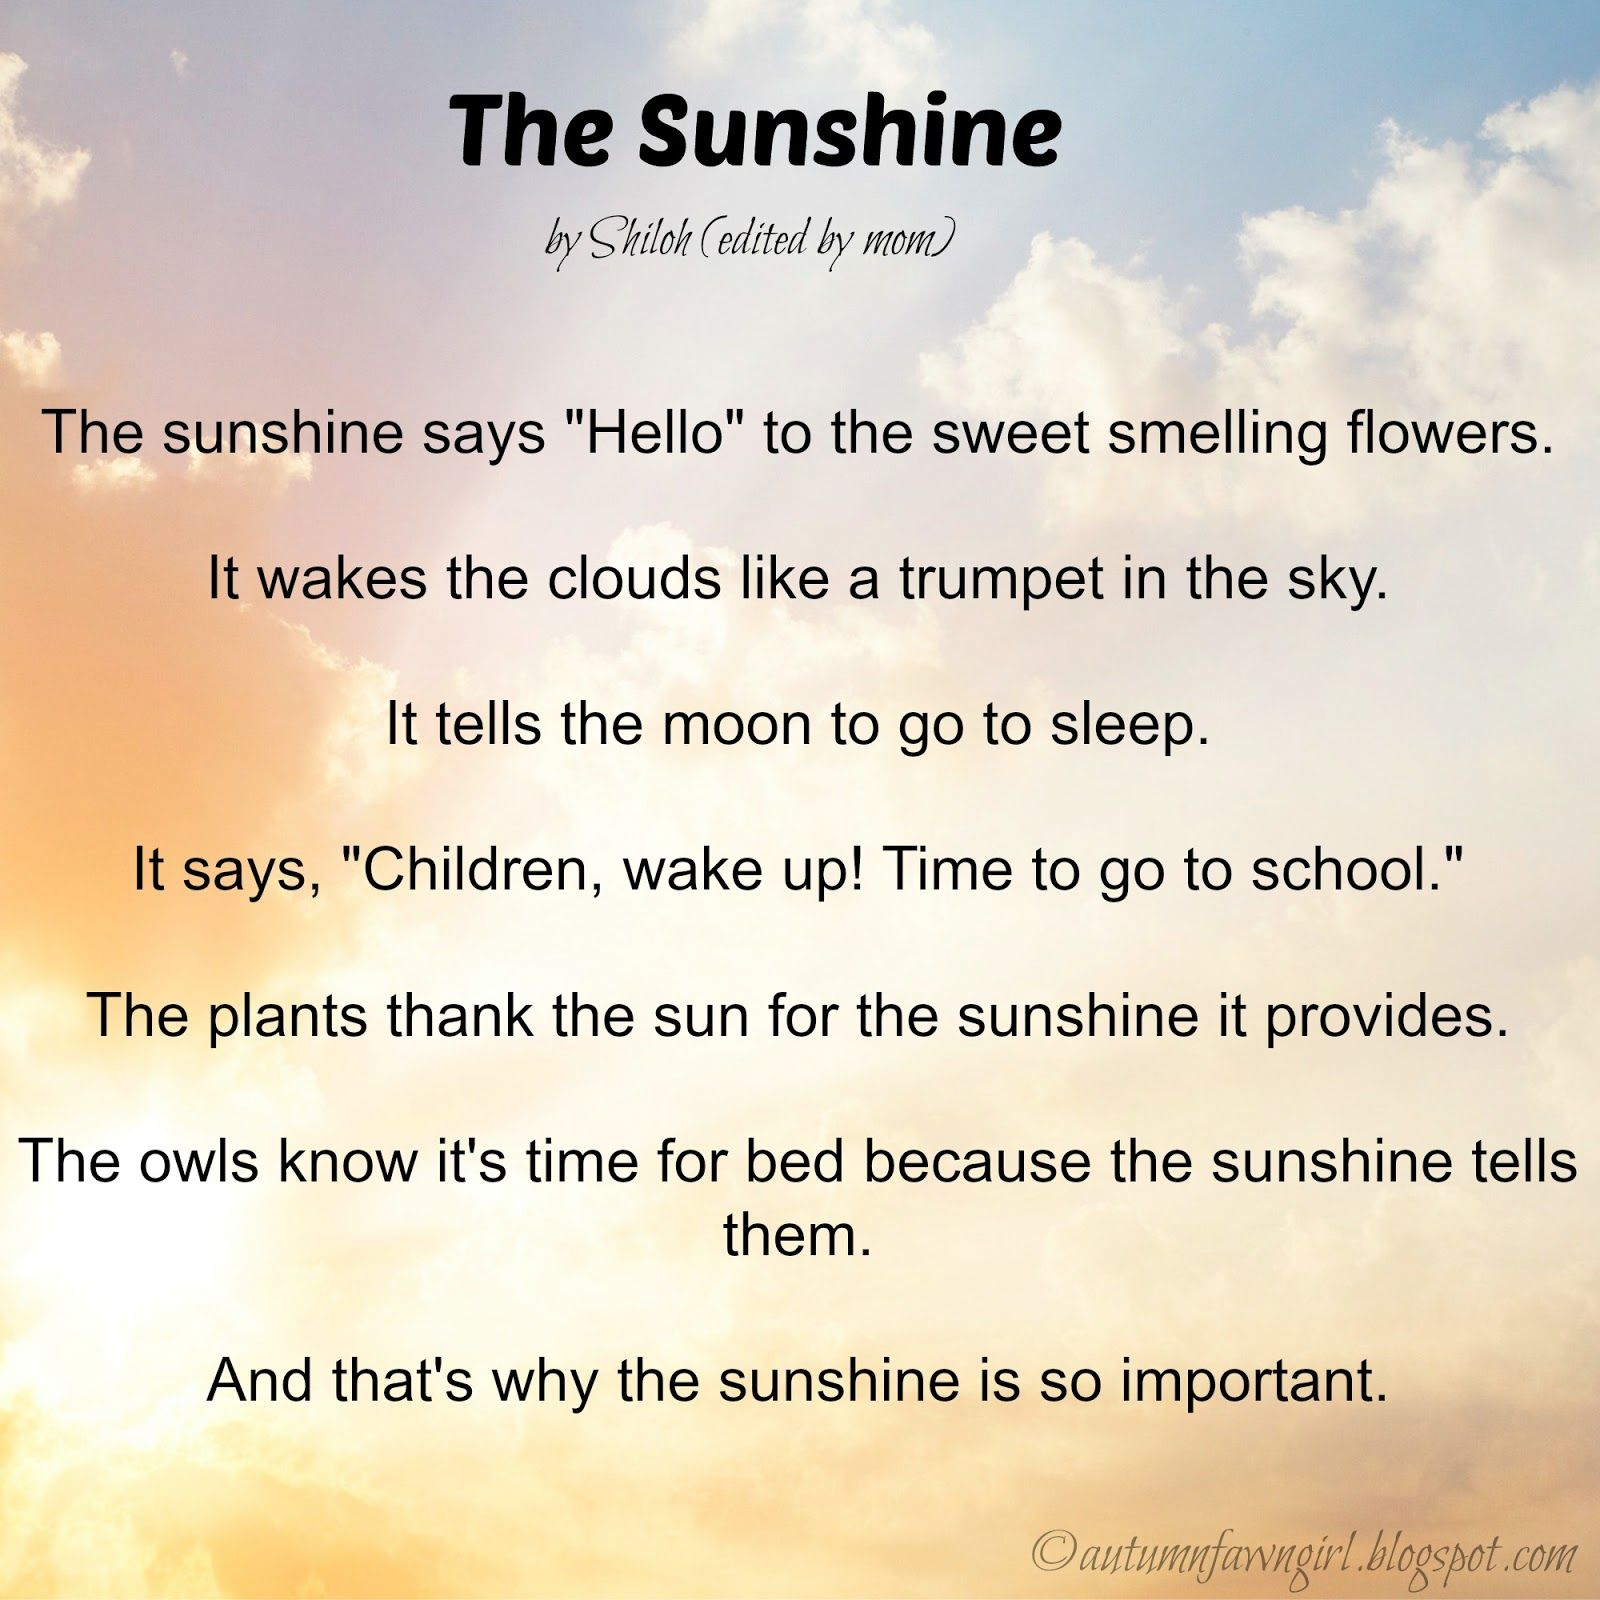 personification poems examples for kids education personification poems examples for kids